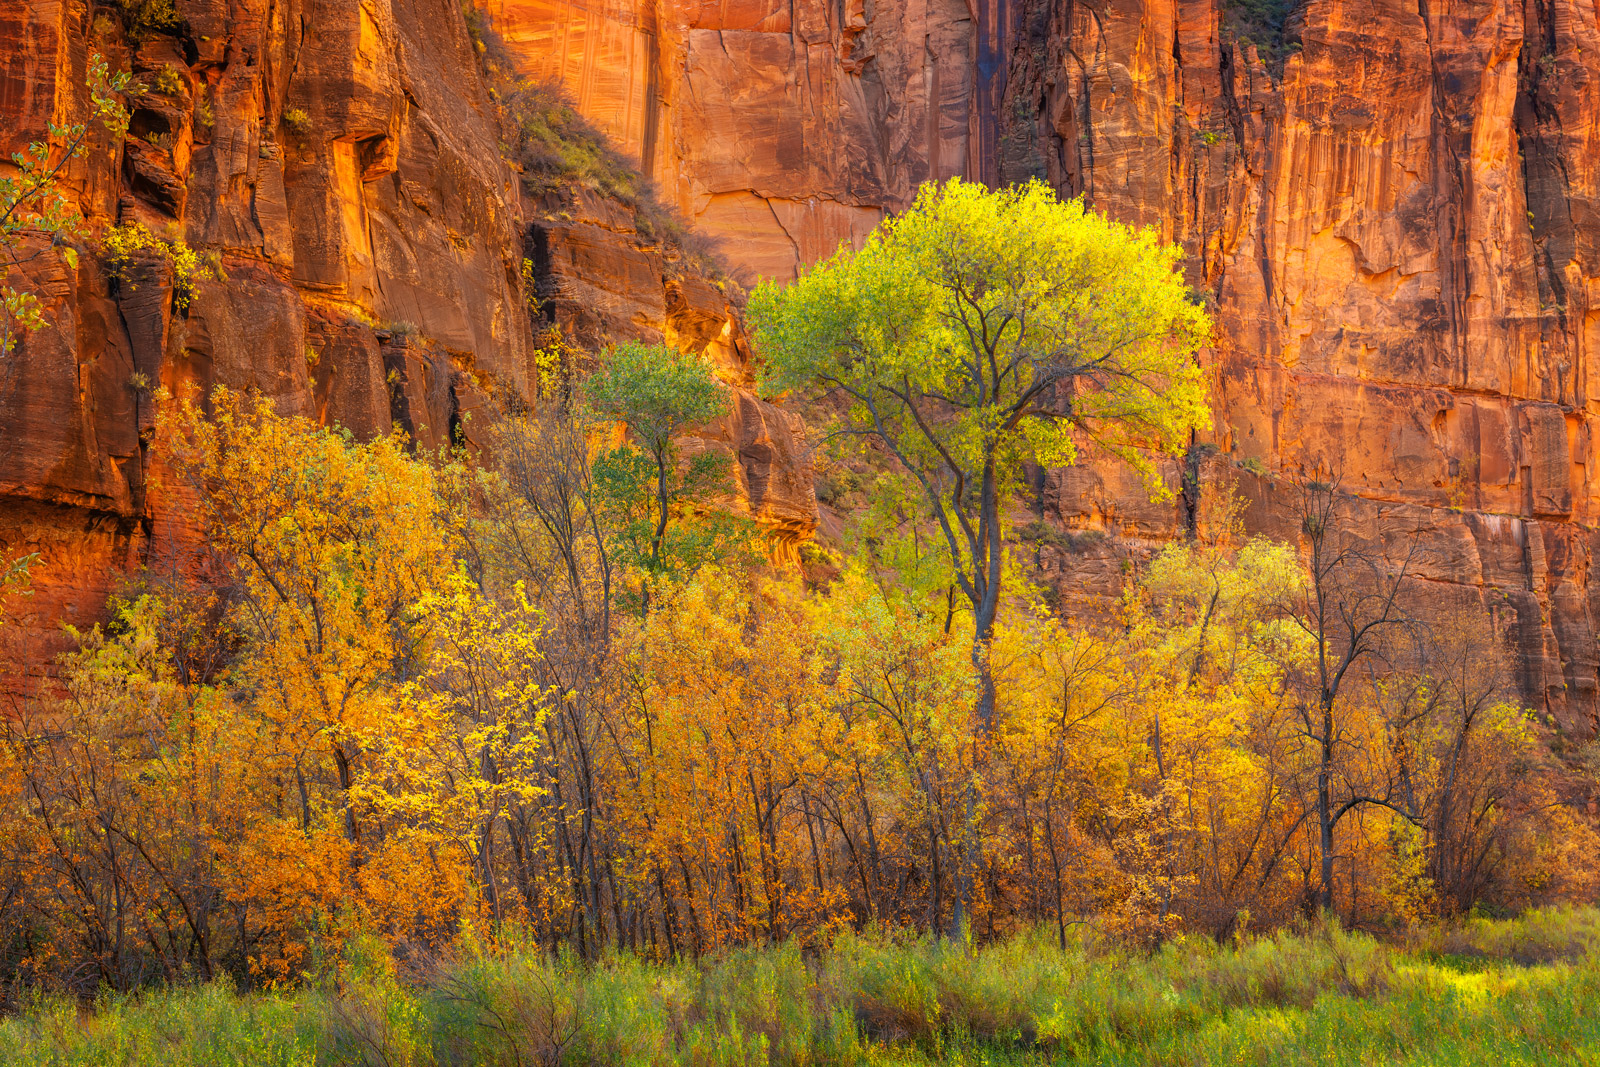 Utah, Zion, National Park, Temple, Sinawava, Red Rock, Canyon, Fall color, limited edition, photograph, photo